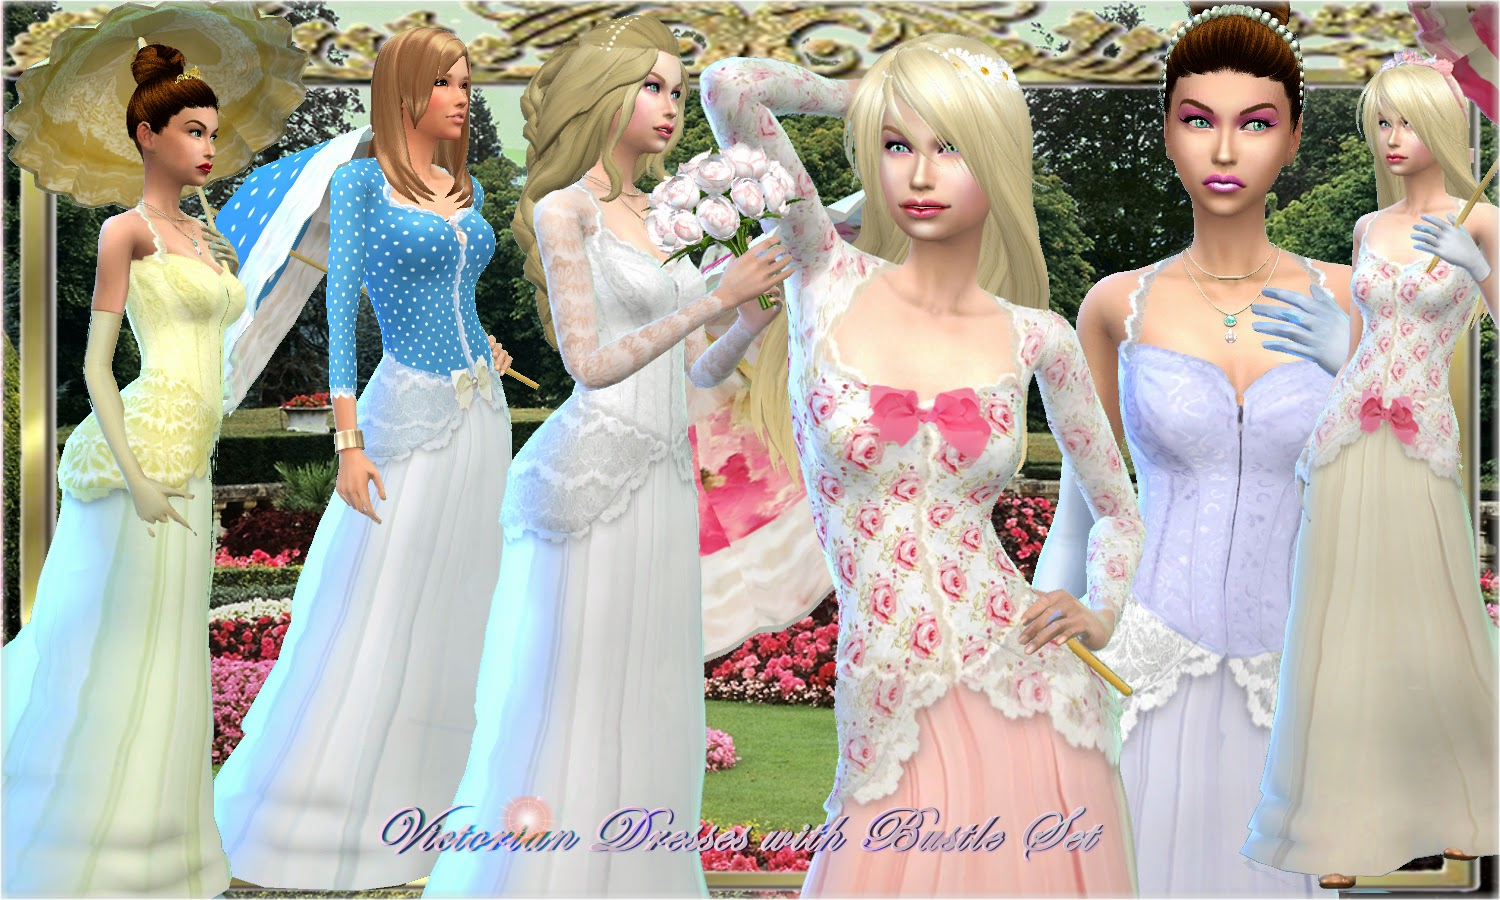 Mythical Dreams Sims 4: Victorian Dress with Bustle Set